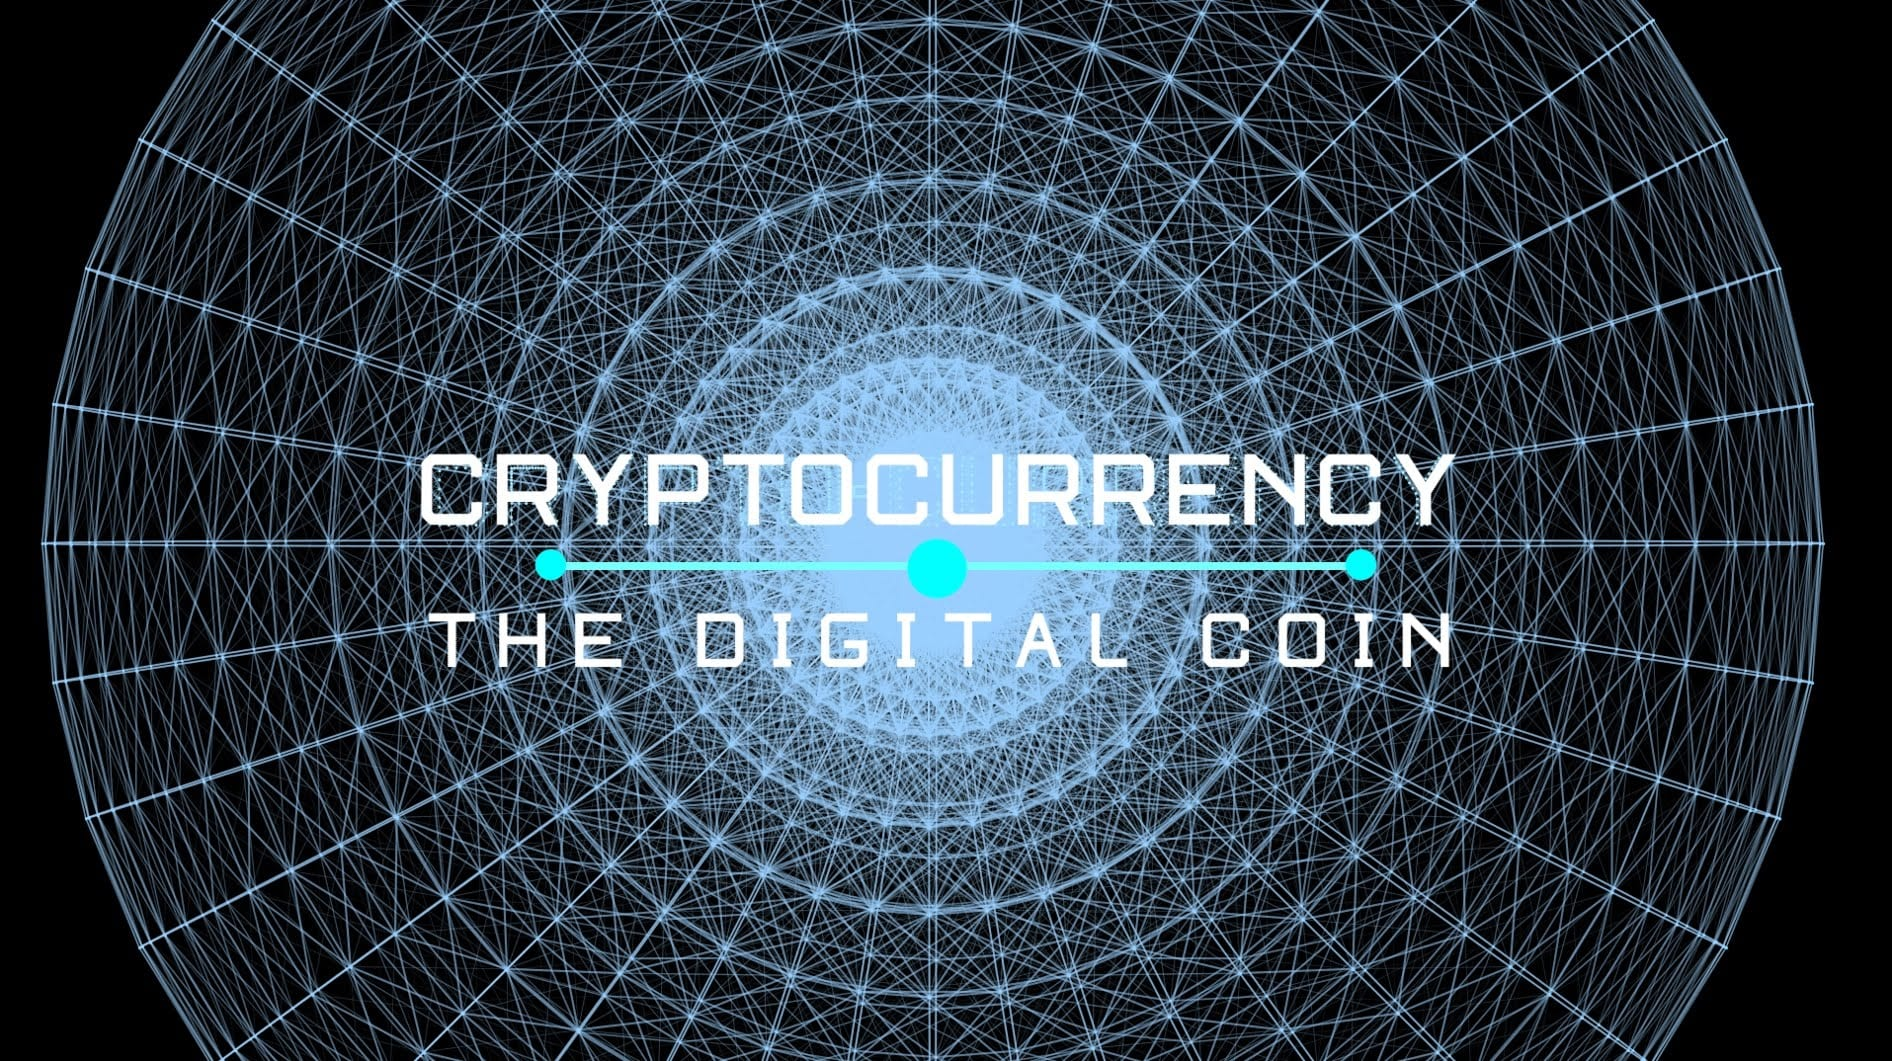 Cryptocurrencies and basic income: digitization, financial inclusion and implementation challenges